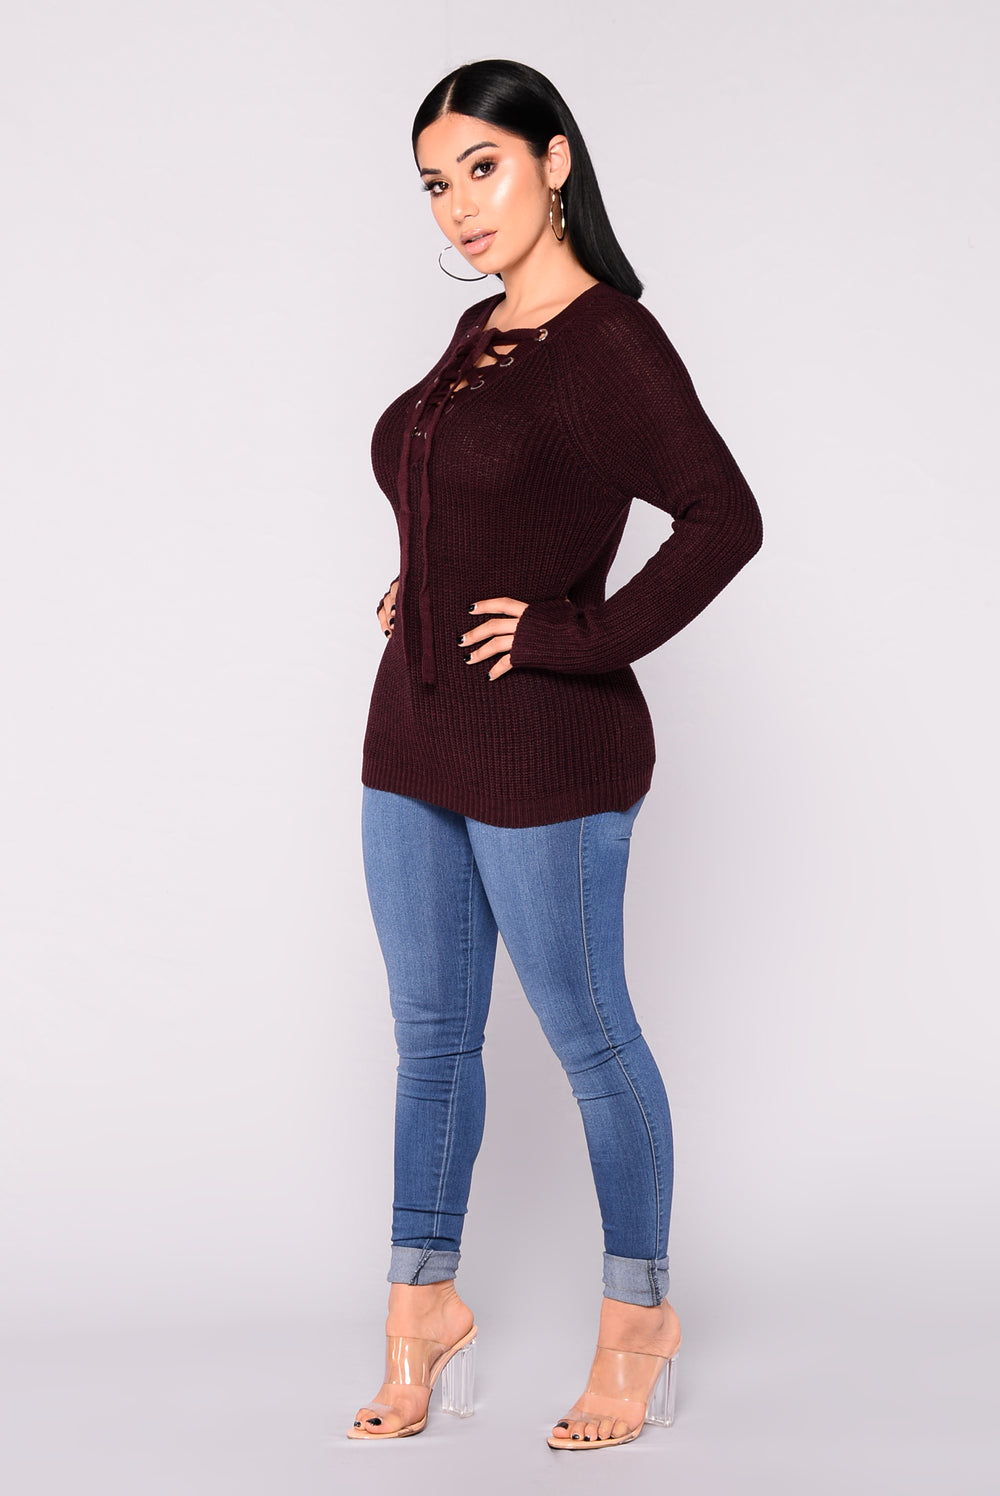 Emma Rose Lace Up Sweater - Plum